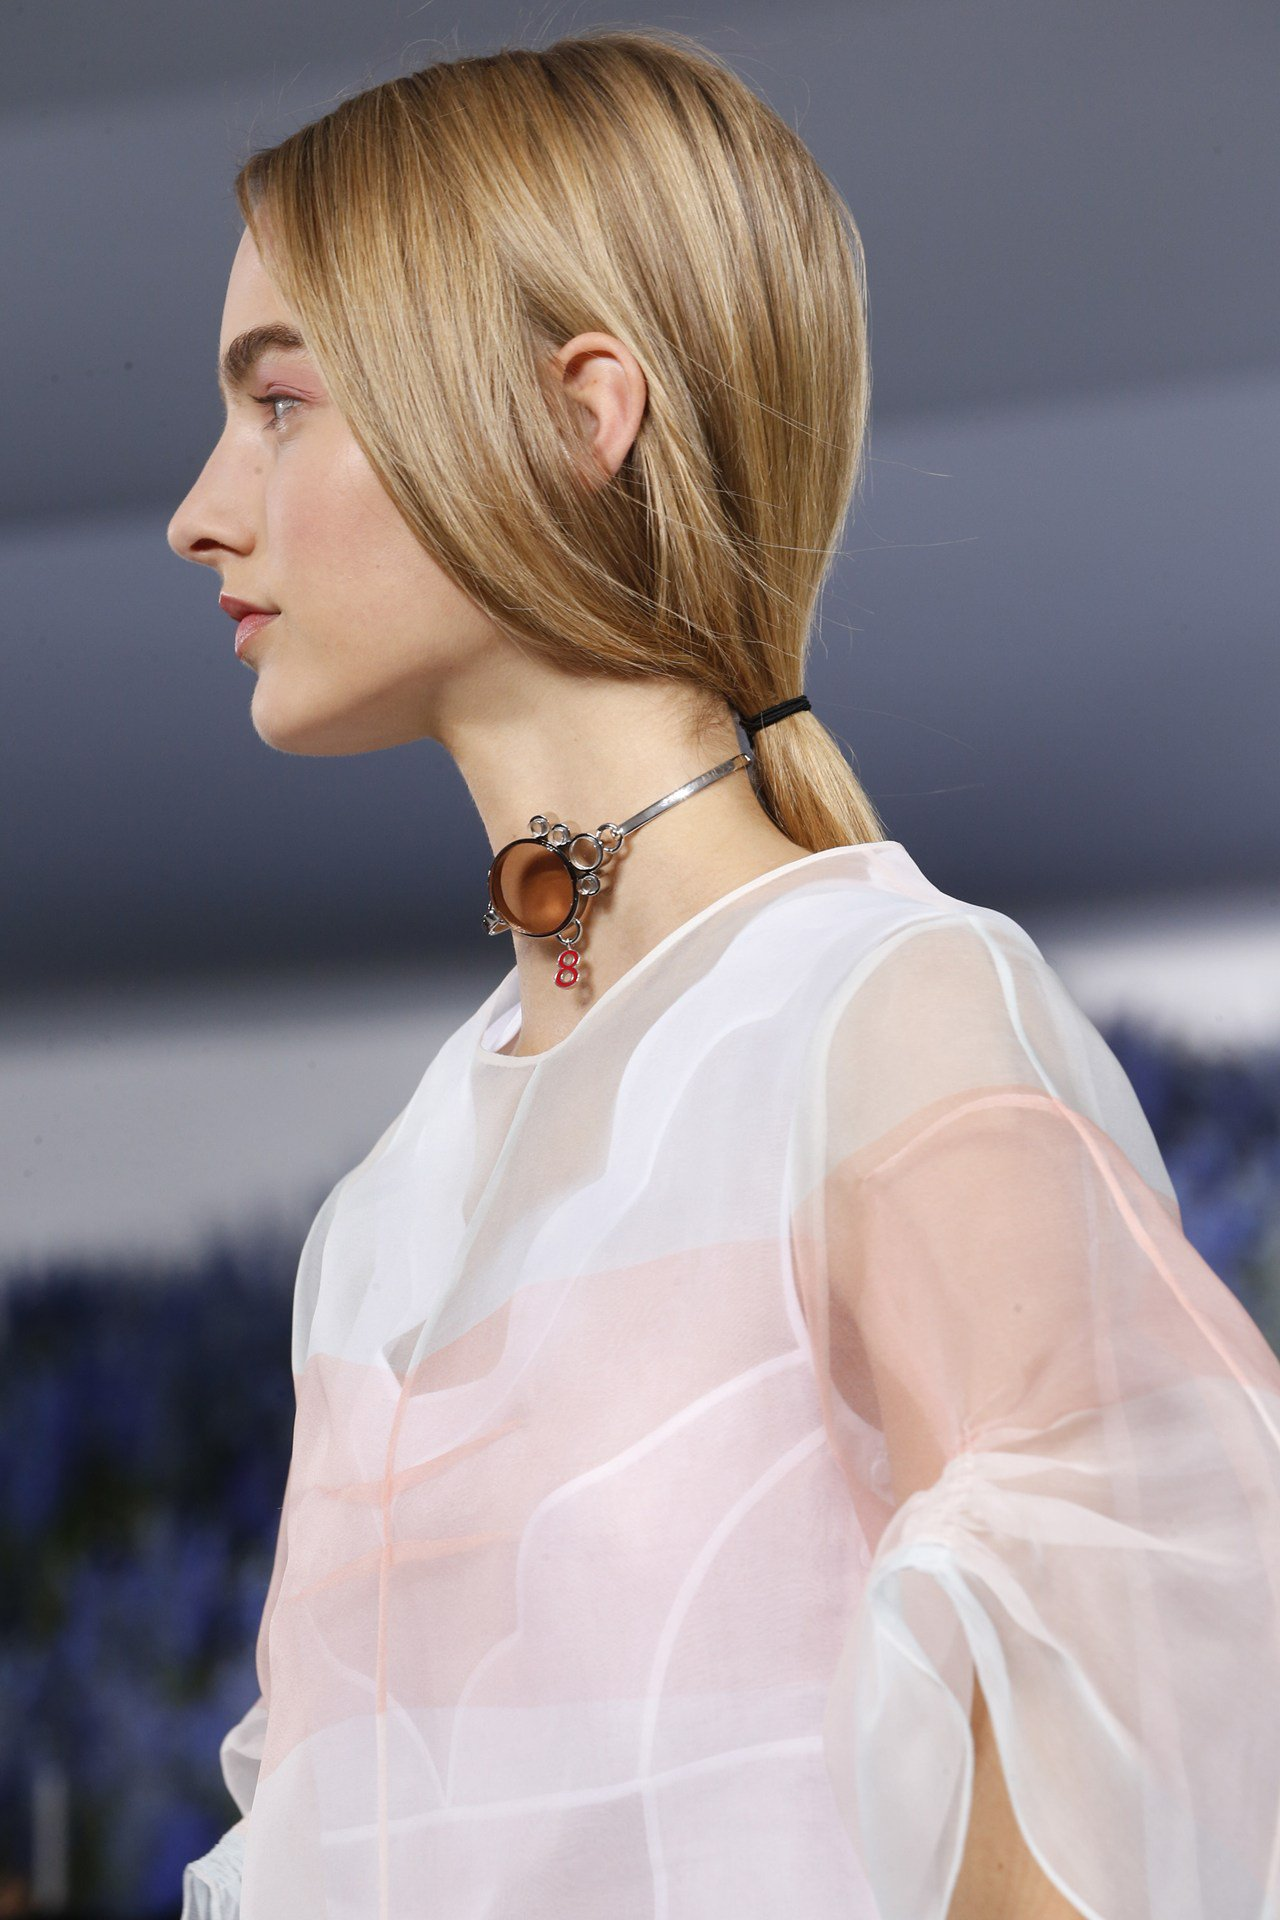 Six summer hairstyle ideas from the catwalk: https://t.co/CJmzSAsKfA https://t.co/OW45i0Ned8